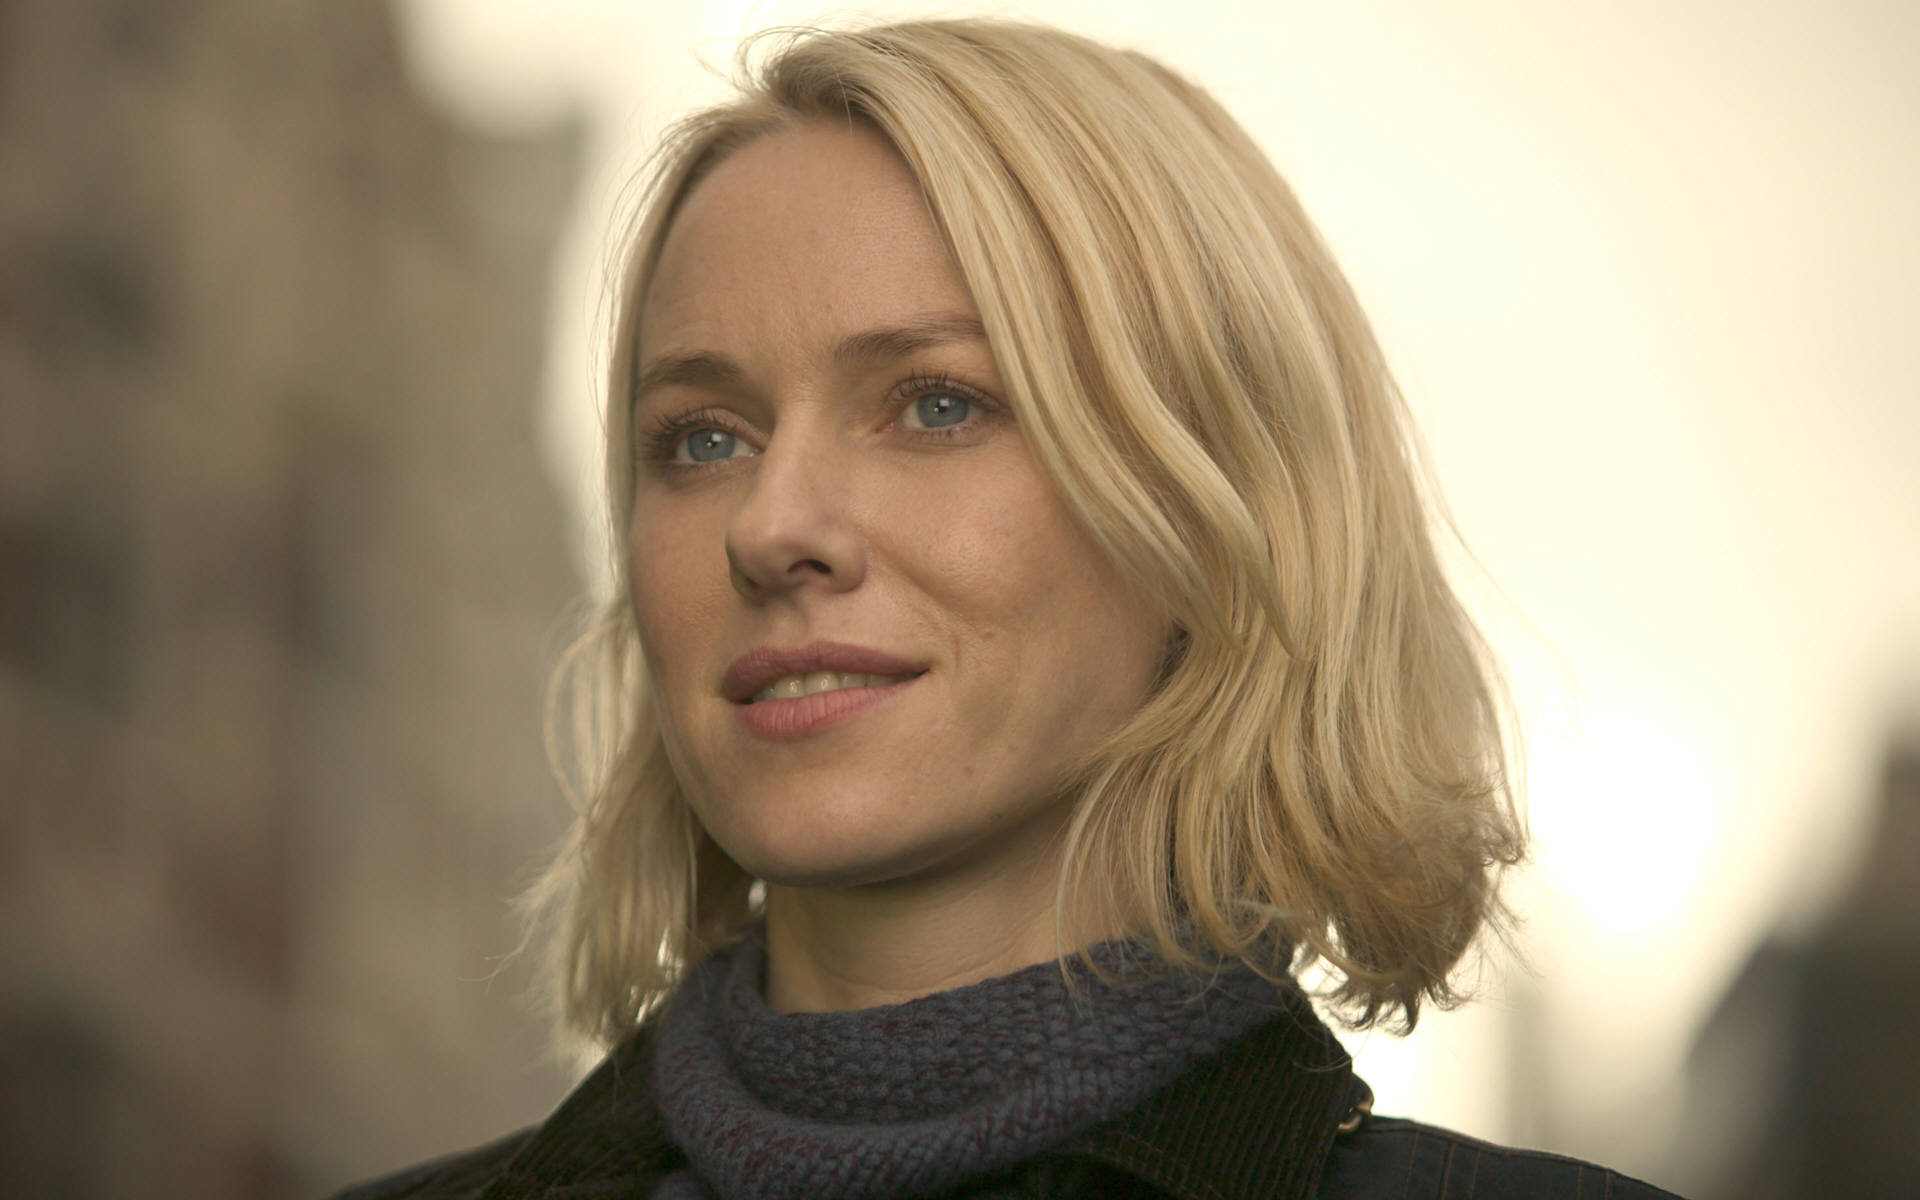 beautiful naomi watts wallpaper - photo #8